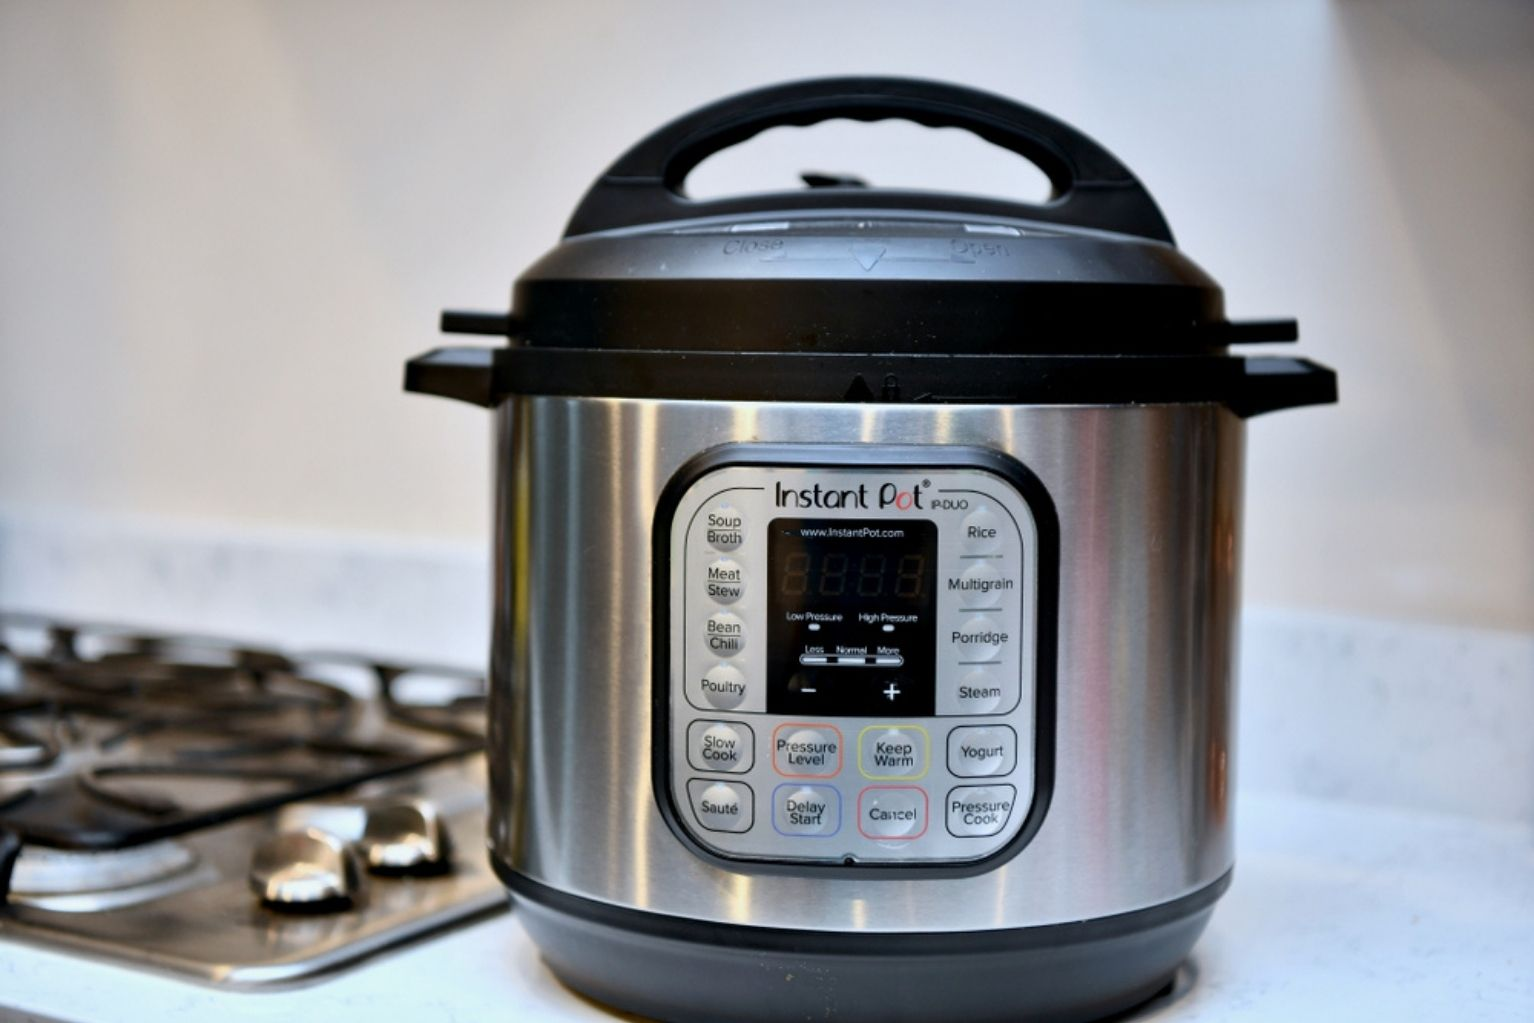 An instant pot on the kitchen counter next to the stove top